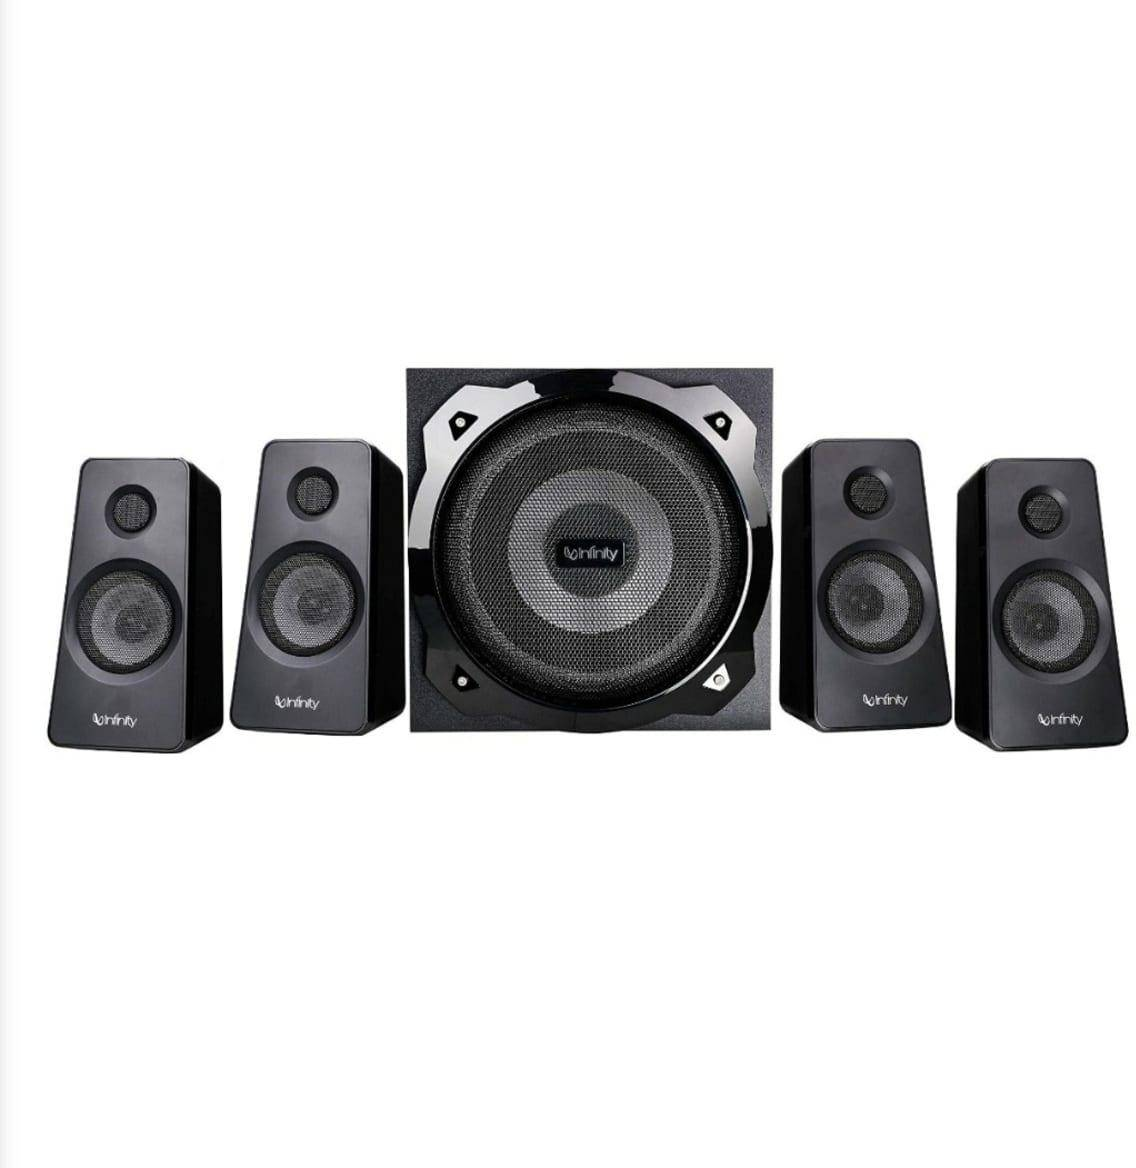 Infinity (JBL) Octabass 410 Deep Bass 4.1 Channel Multimedia Speakers (INFOCB410) zoom image